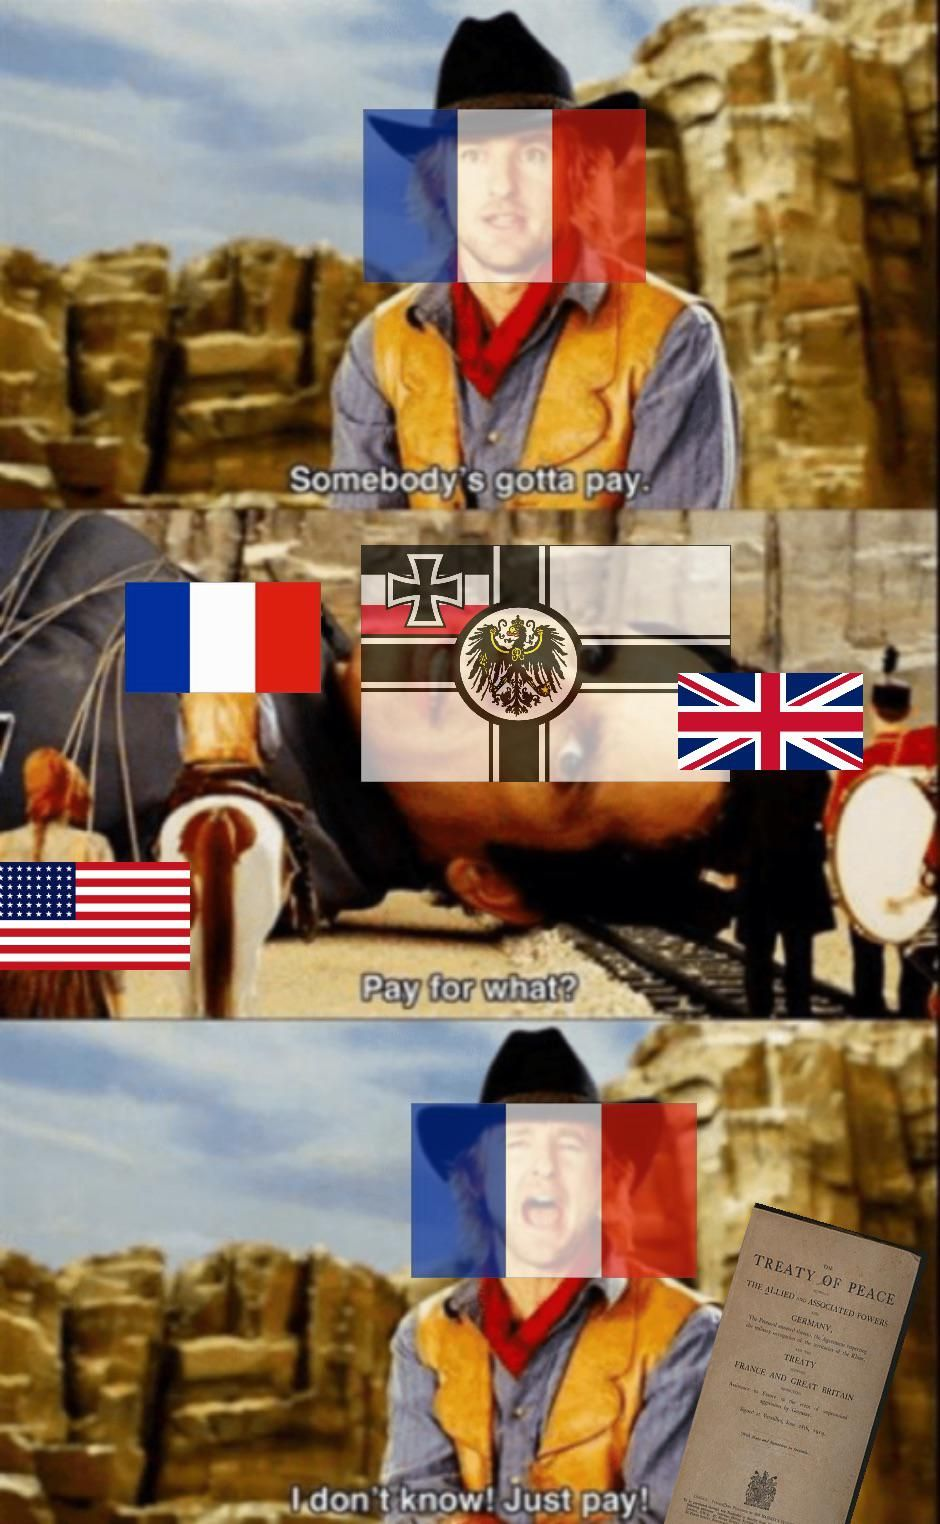 *Serbia quietly whistles to itself in the corner*